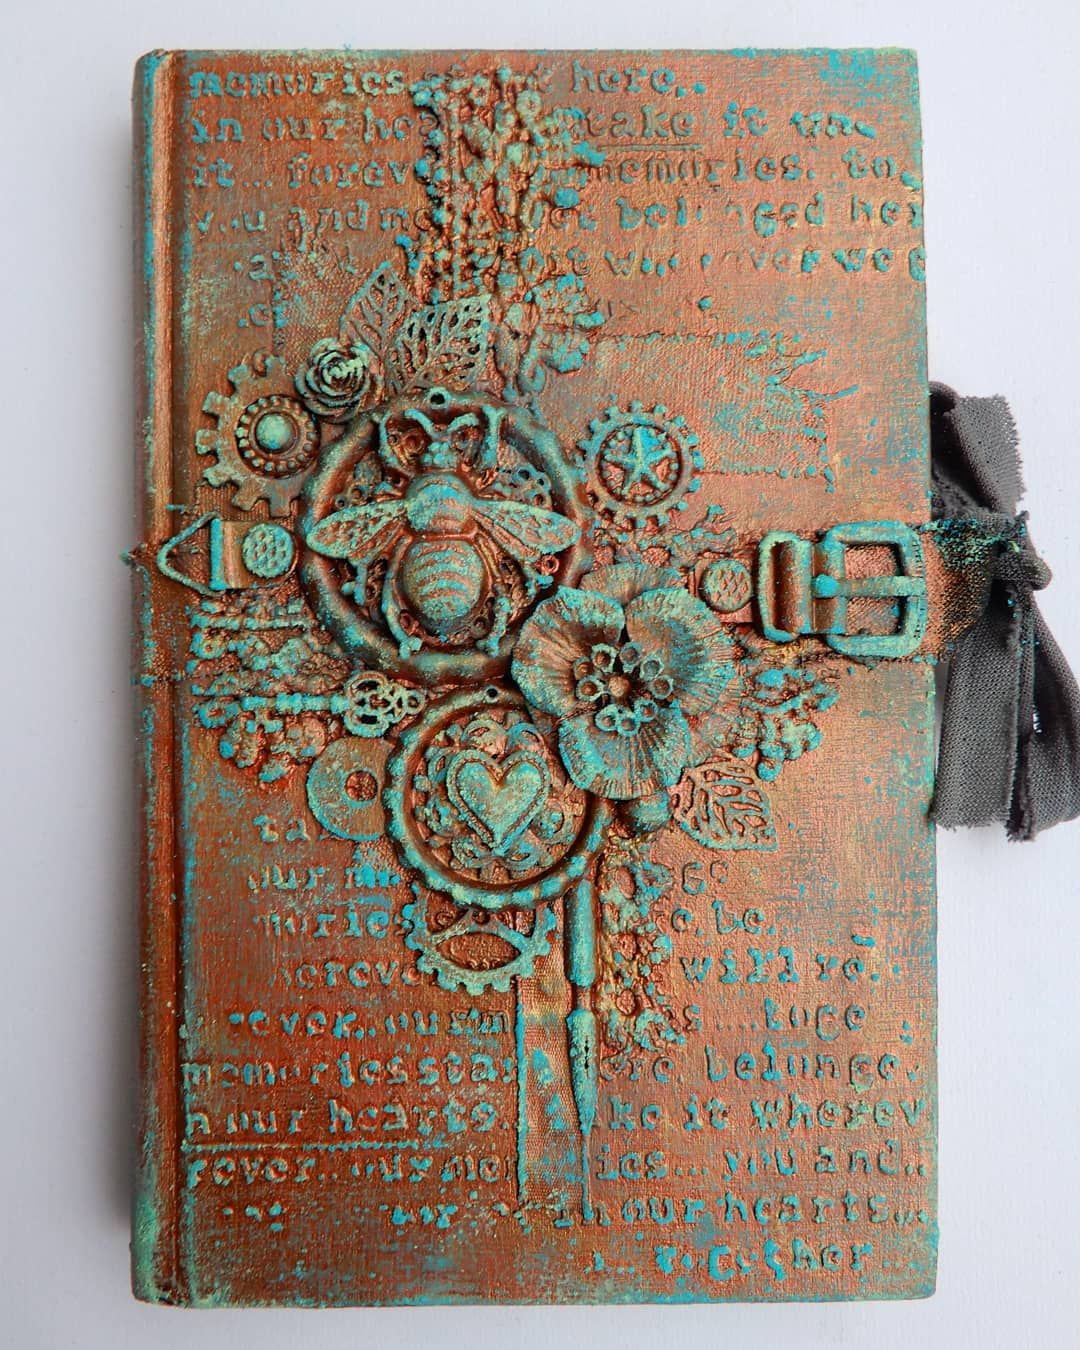 altered book cover with my beloved finnabair products    #mixedmedia#alteredart#alteredbook#bookcover#patinapaste#finnabair#artalchemypaints#metalembellishments#vintage #artjournalmixedmediainspiration